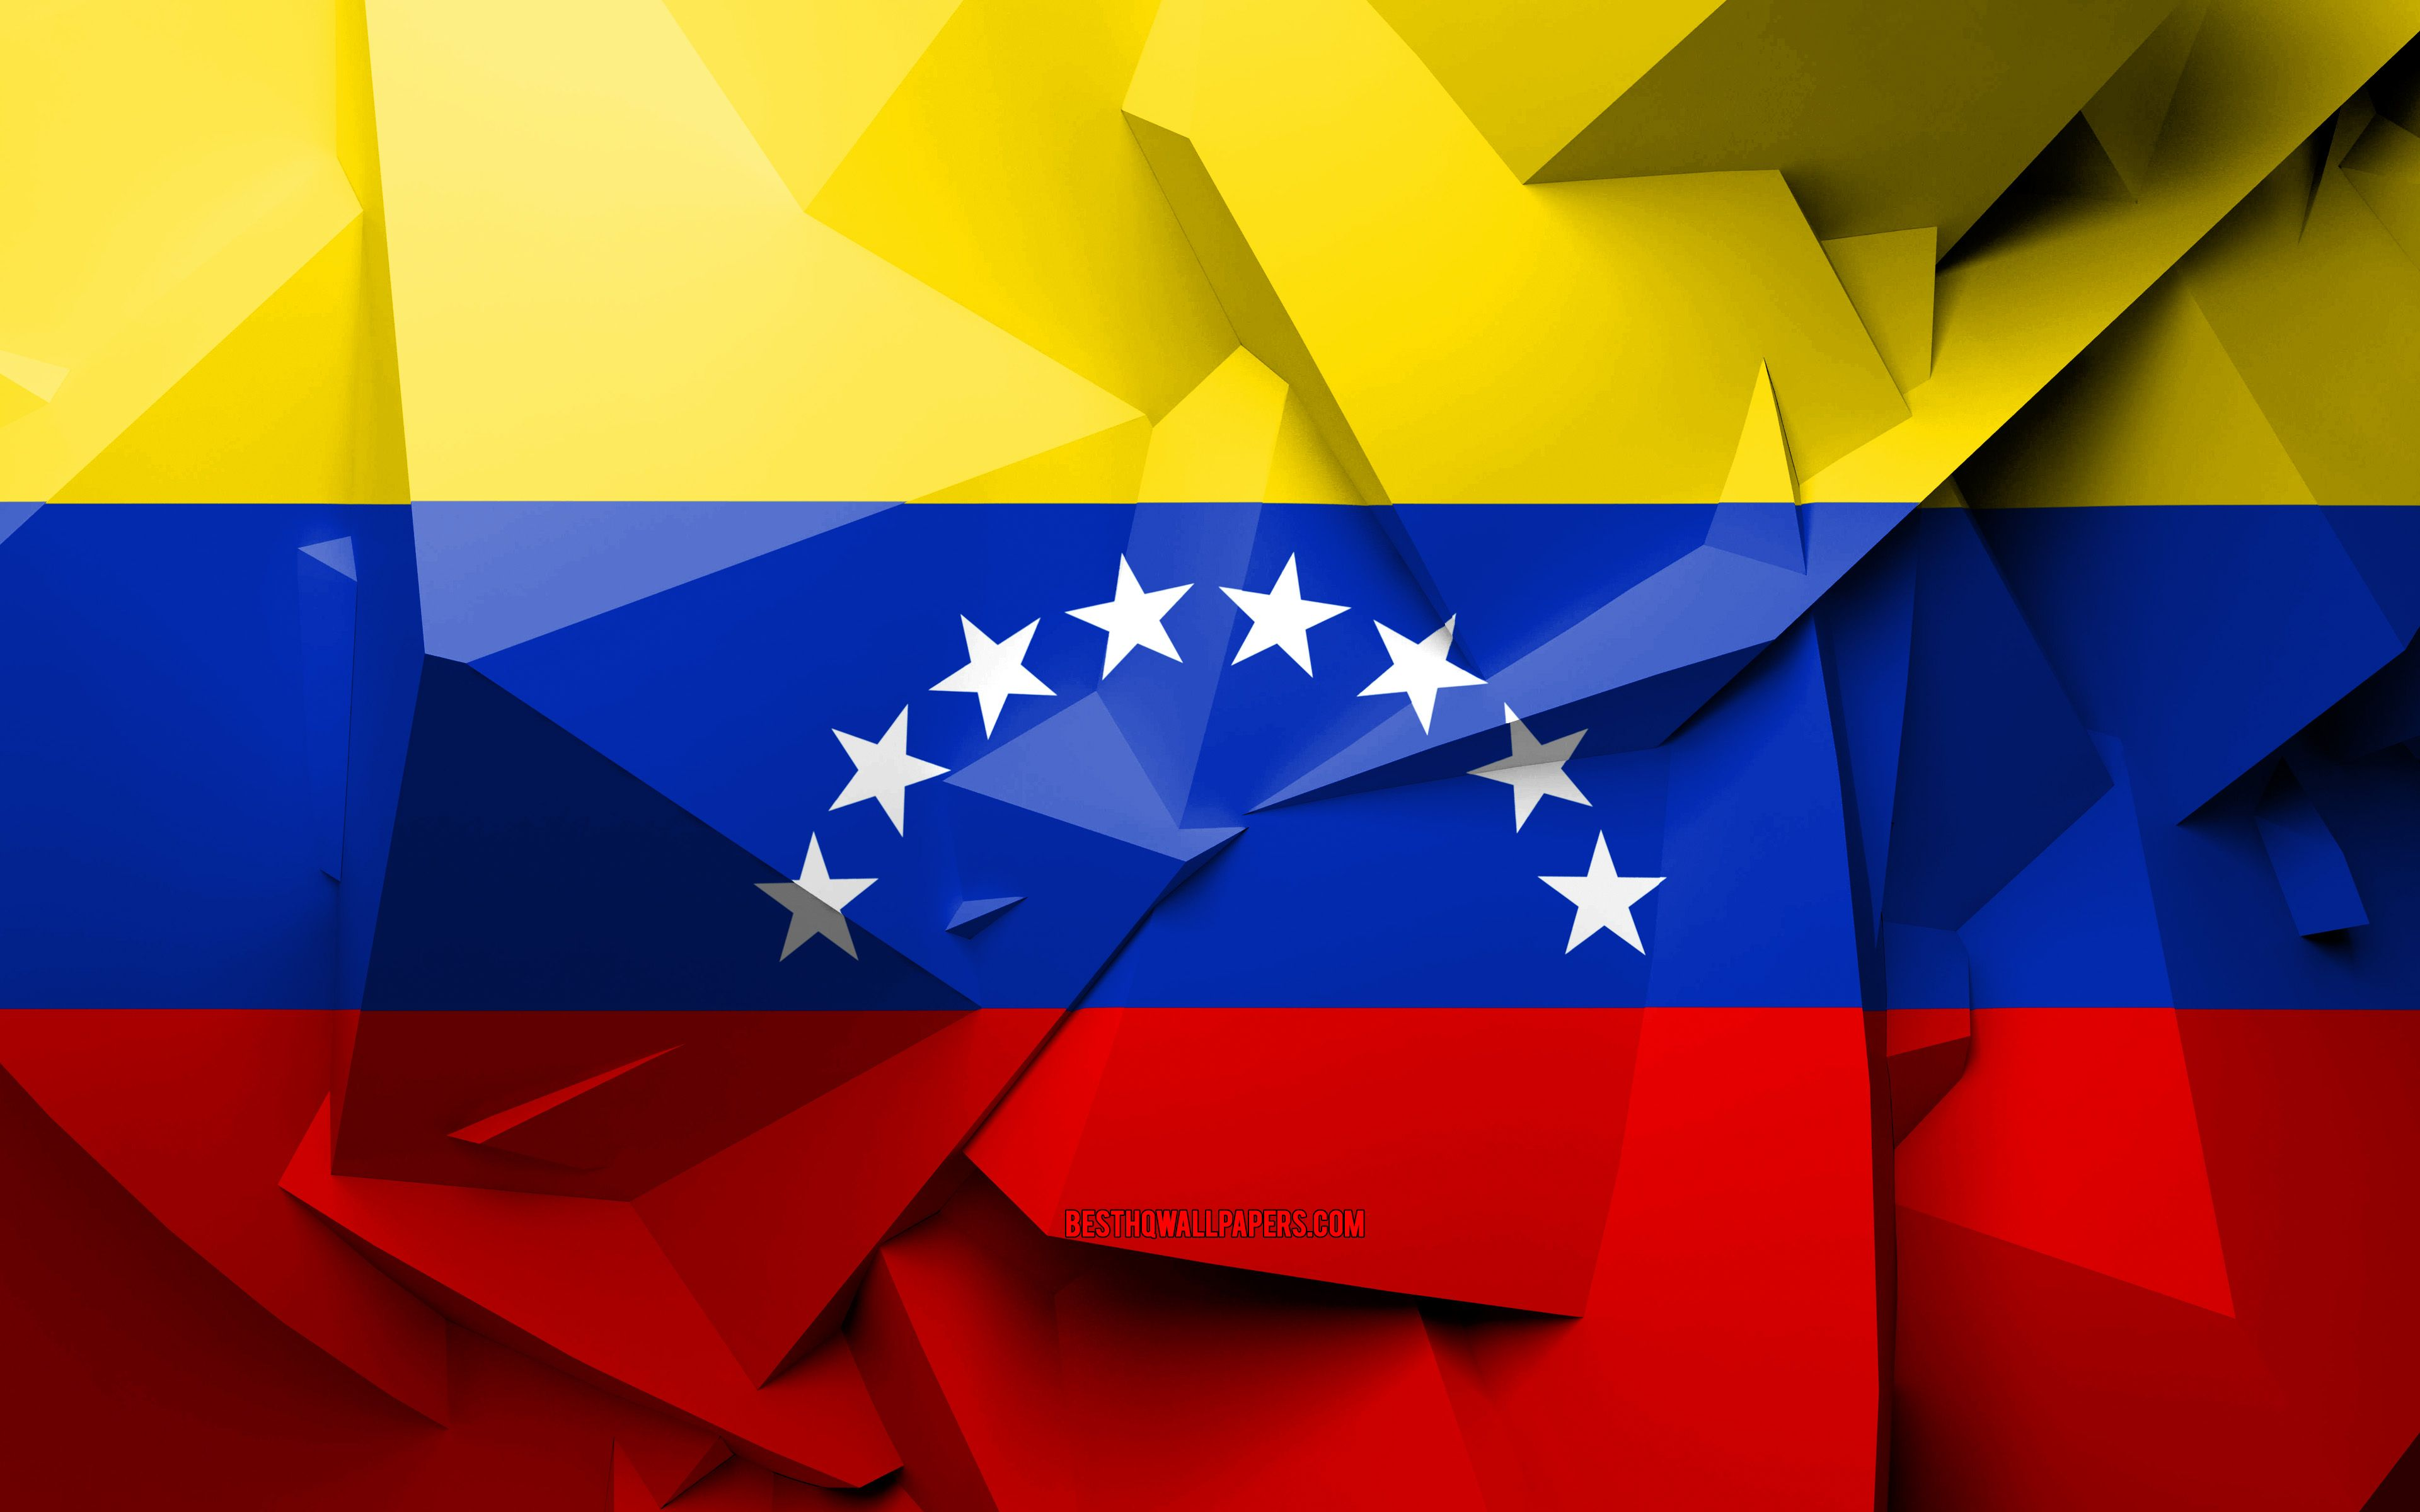 3840x2400 Download wallpapers 4k, Flag of Venezuela, geometric art ...